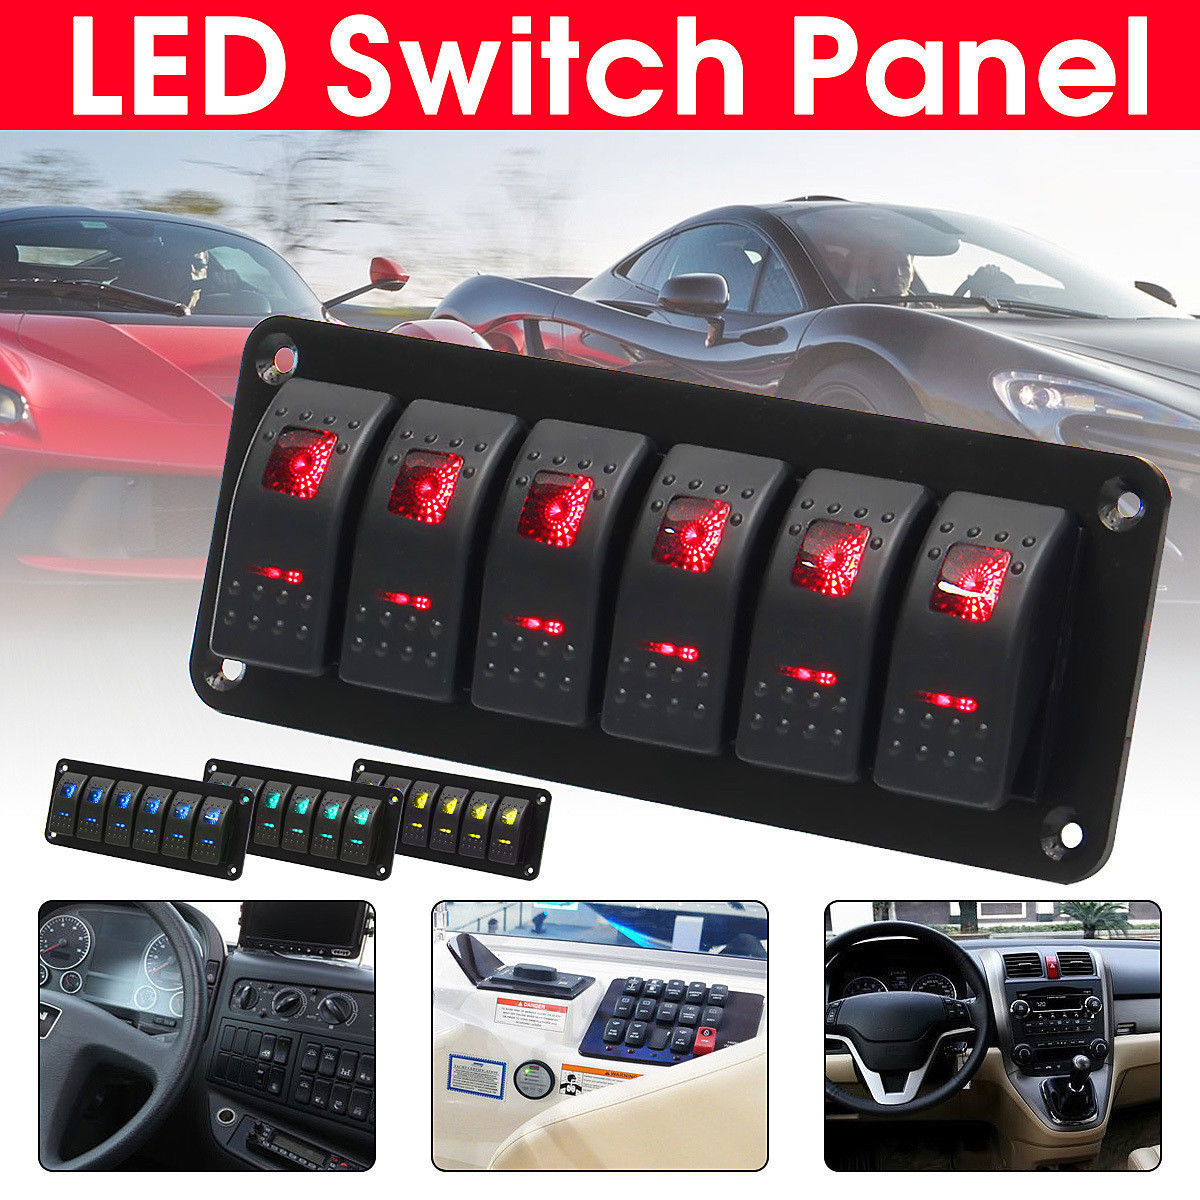 6 Gang Rocker Switch Panel with Red LED Light Circuit Breaker for Boat/car high quality waterproof ABS&PC&Aluminum 12V-24V Black6 Gang Rocker Switch Panel with Red LED Light Circuit Breaker for Boat/car high quality waterproof ABS&PC&Aluminum 12V-24V Black